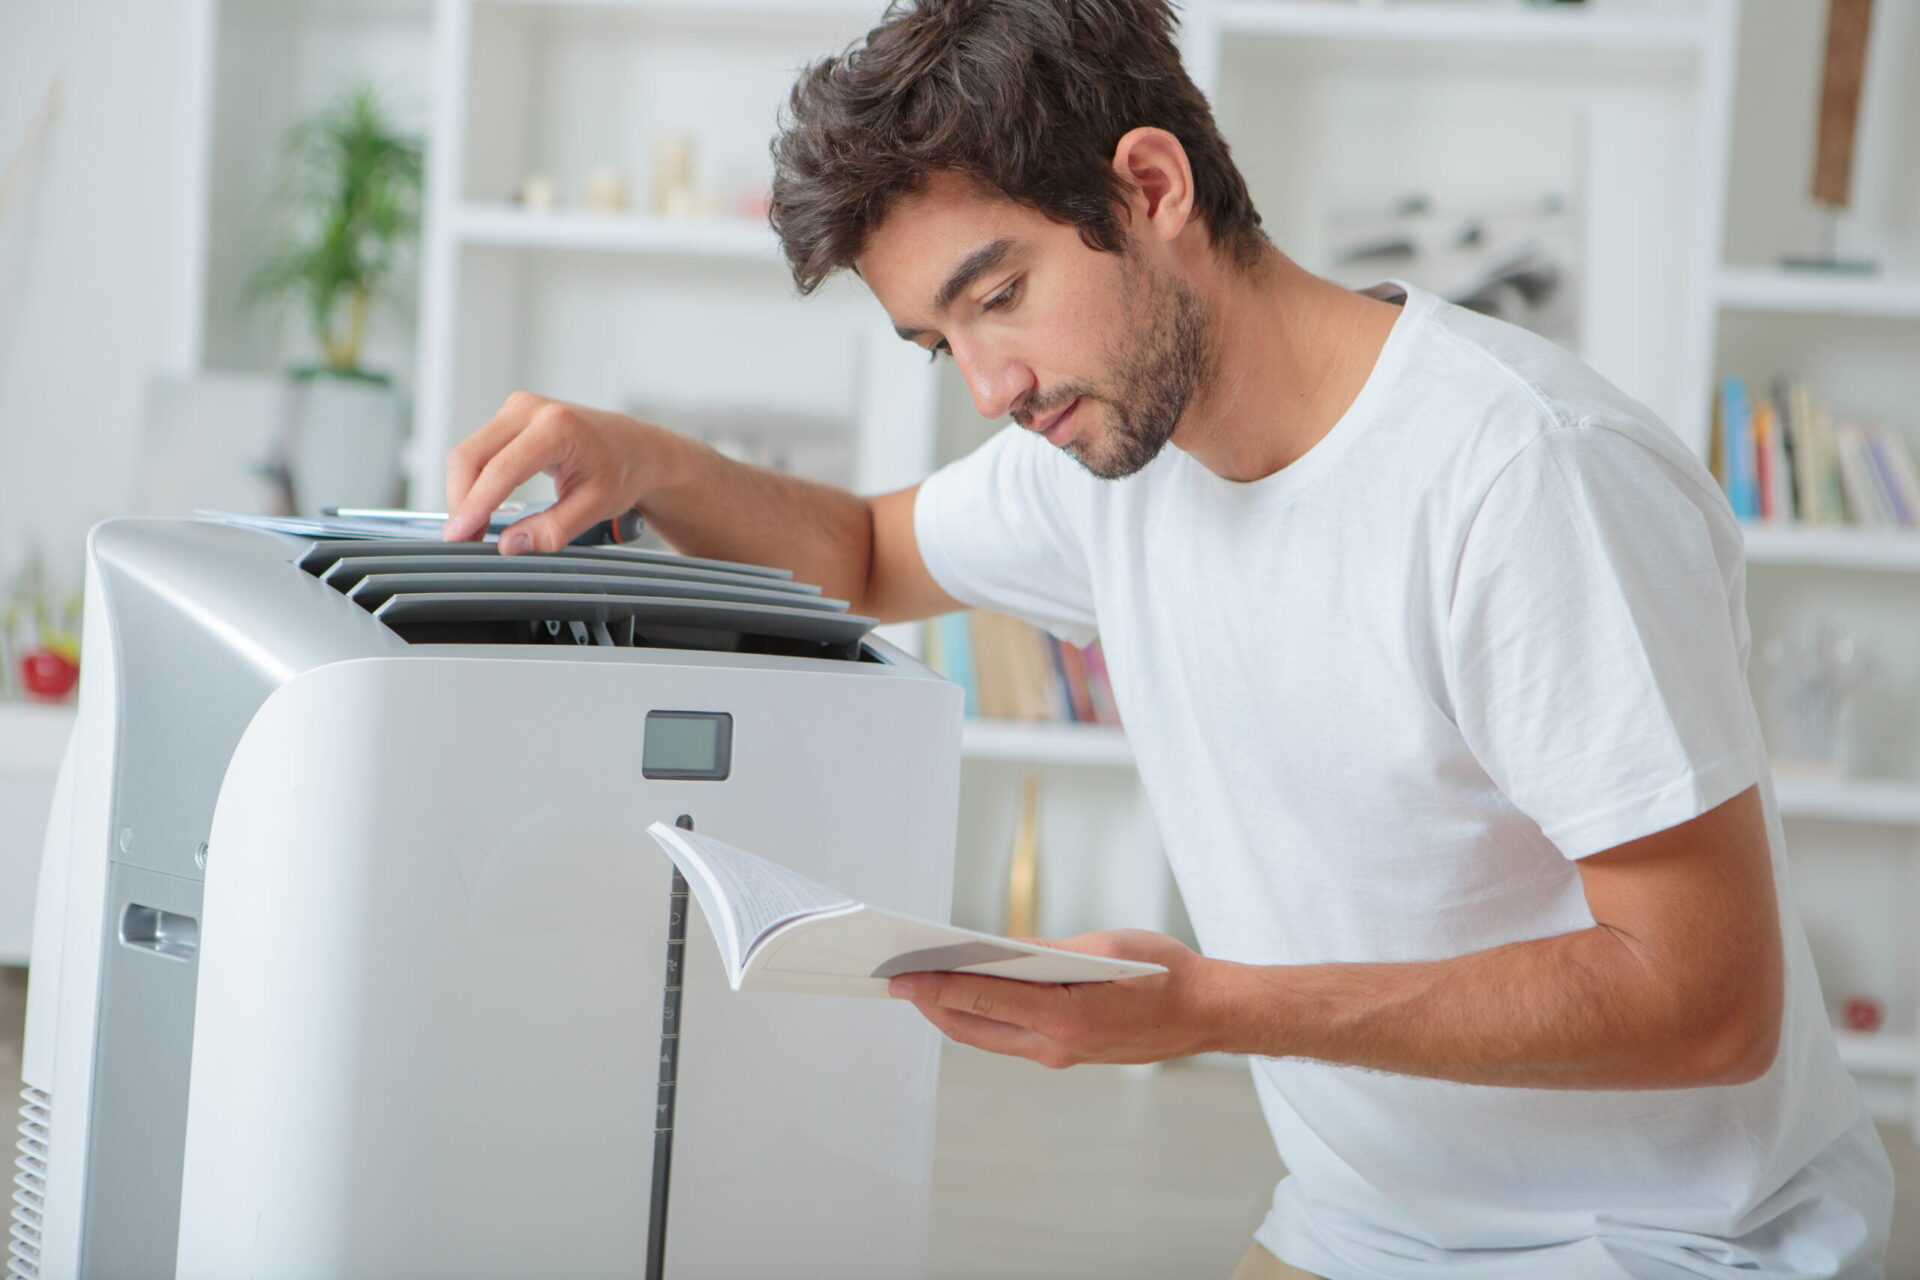 knowing the components and reading the space heater manual